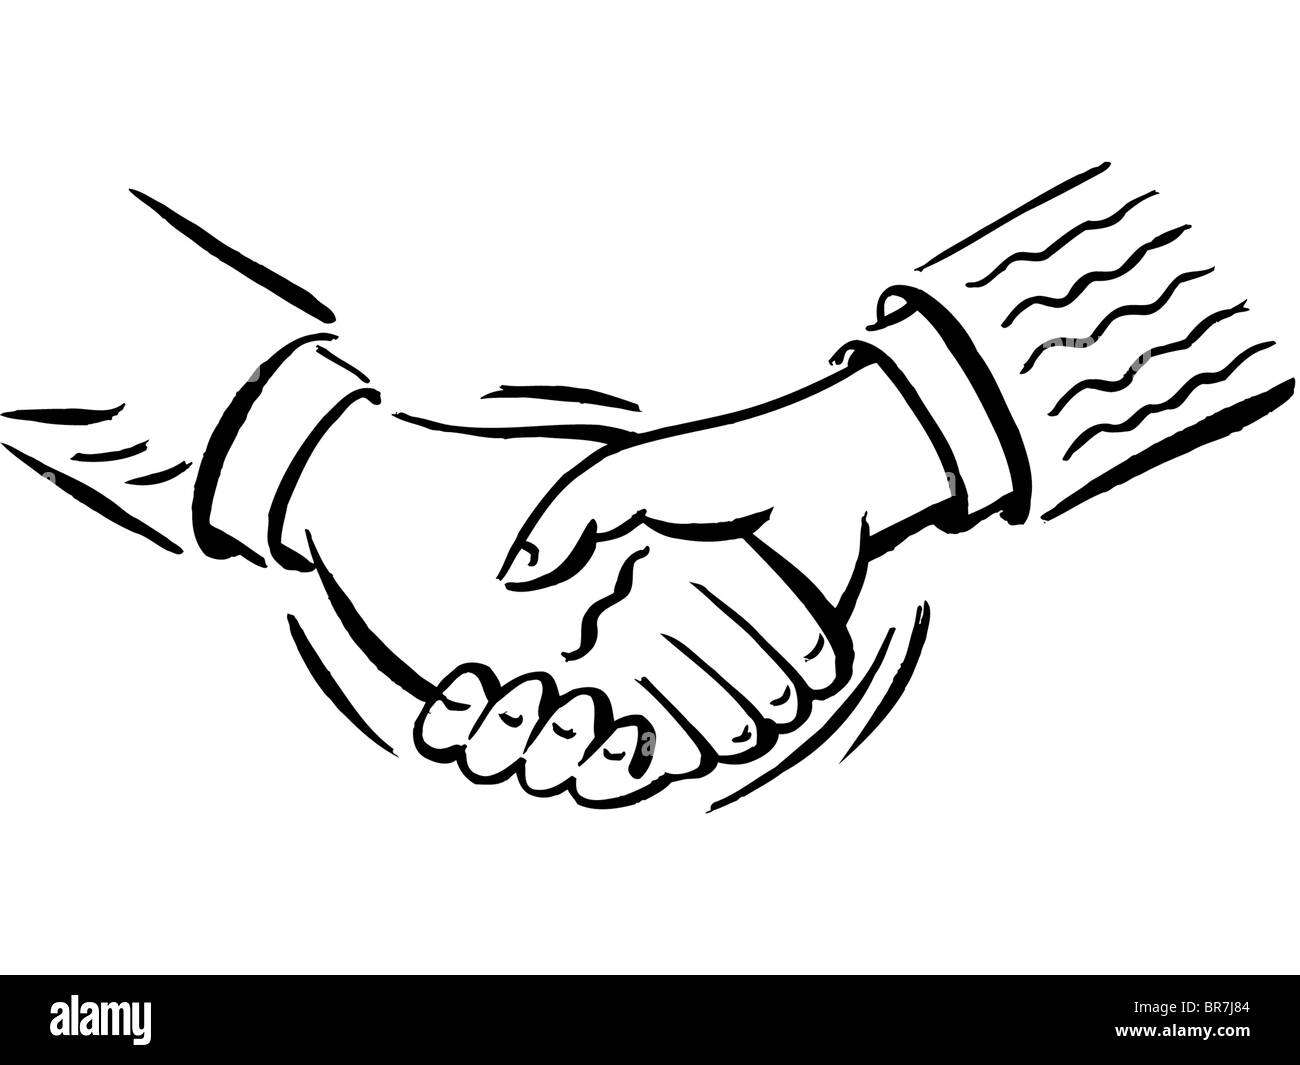 A handshake shown in black and white Stock Photo